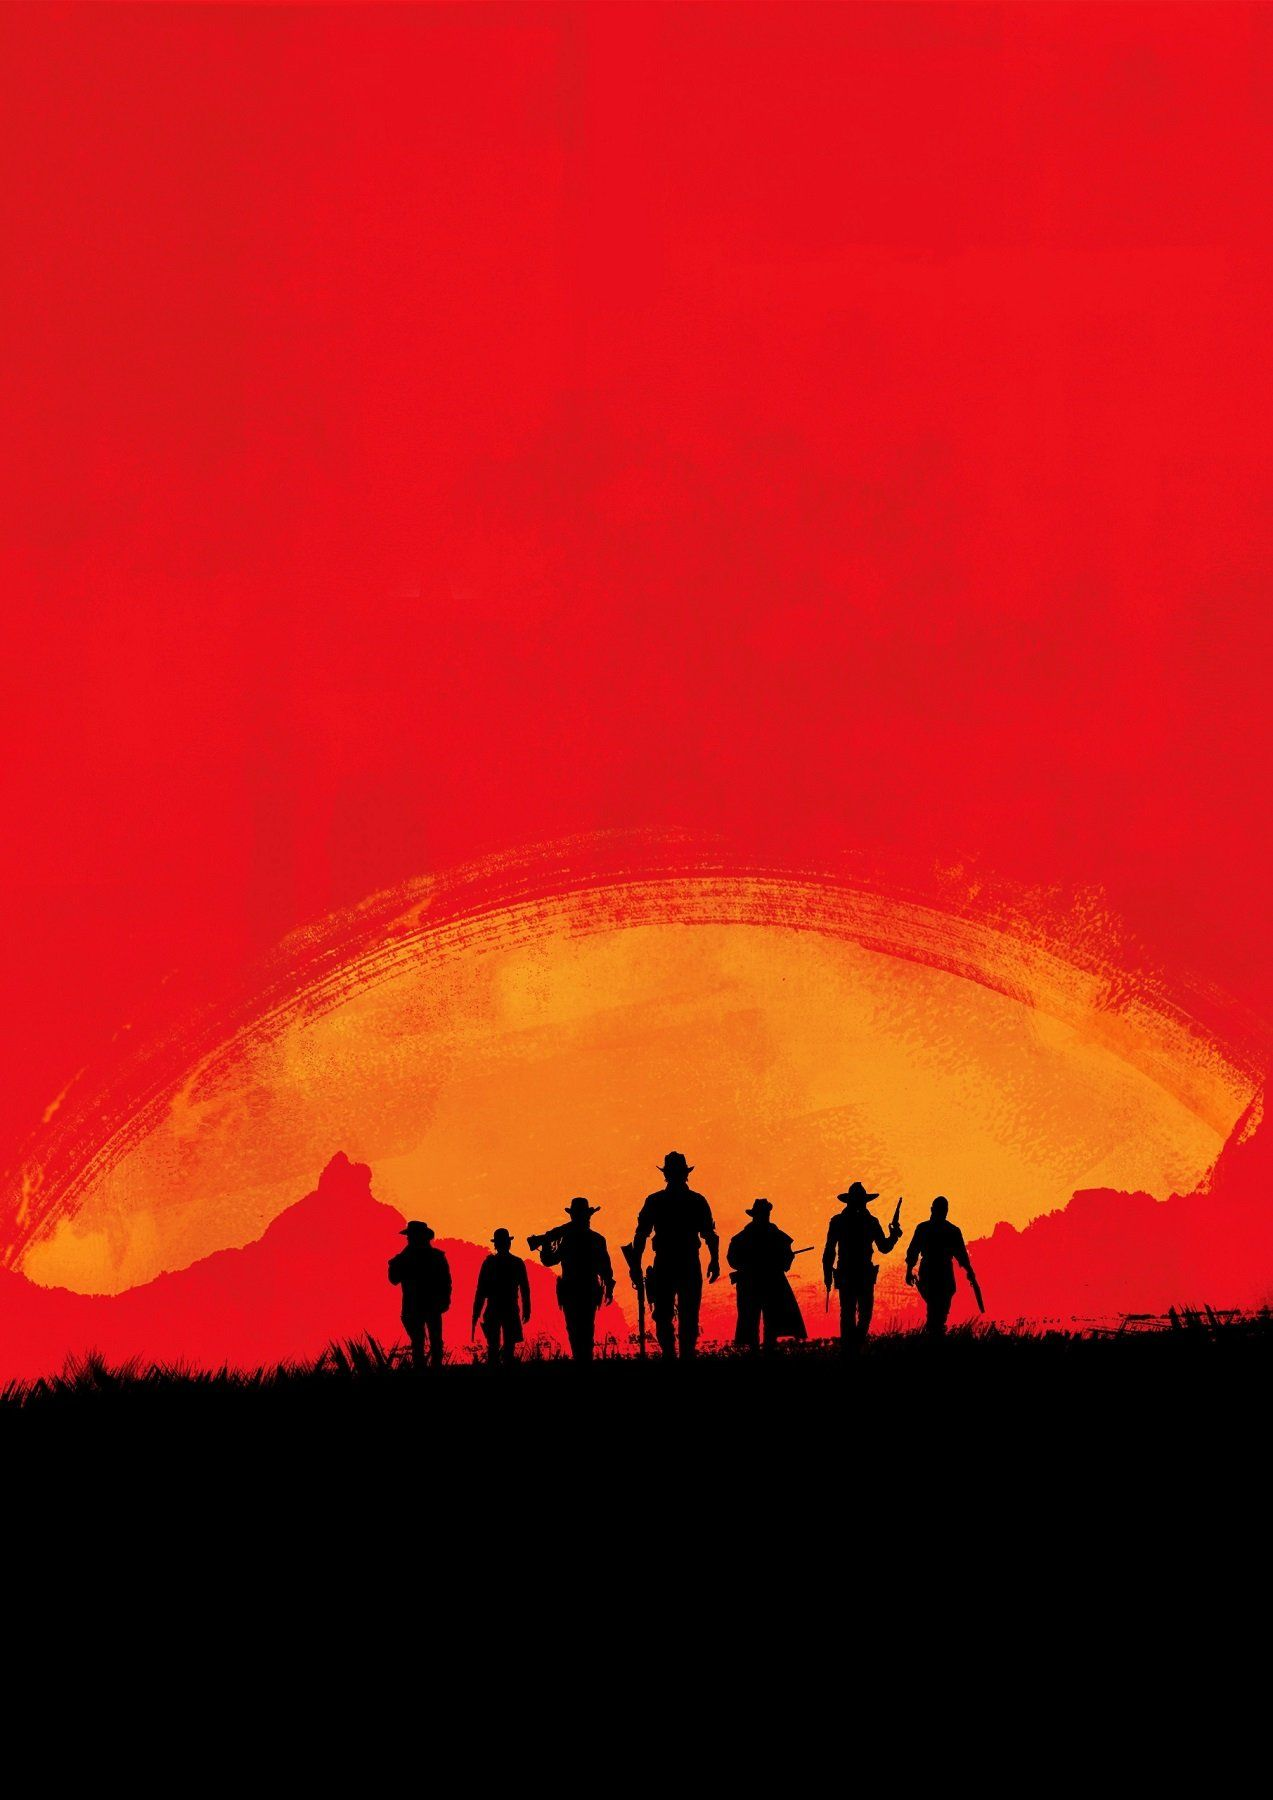 Red Dead Redemption 2 Poster Red dead redemption, Red